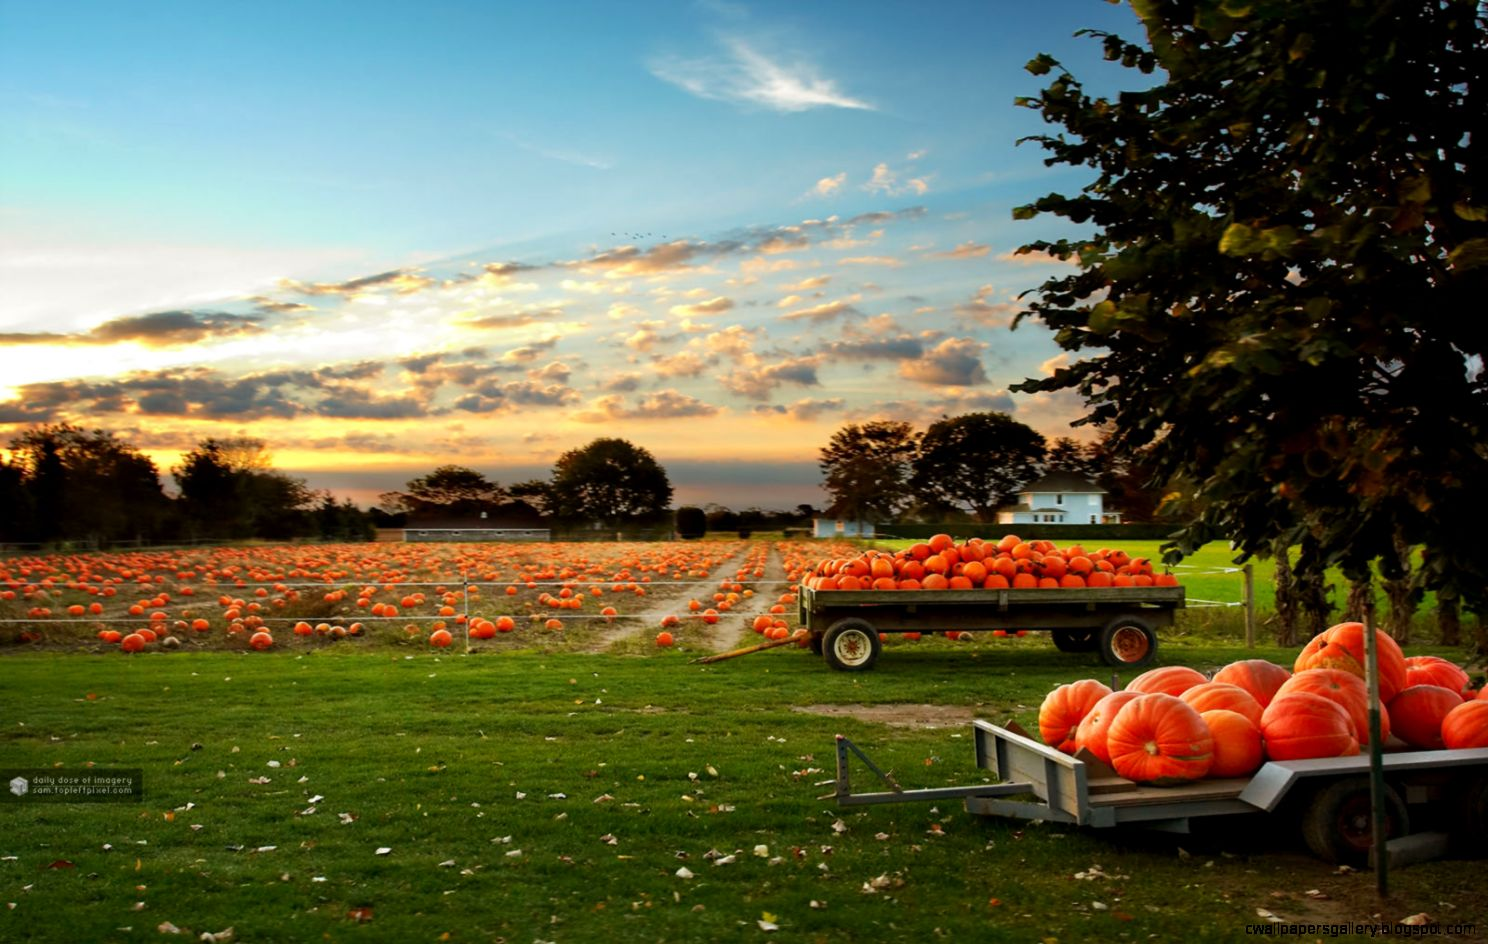 Fall Scene Wallpaper with Pumpkins   WallpaperSafari